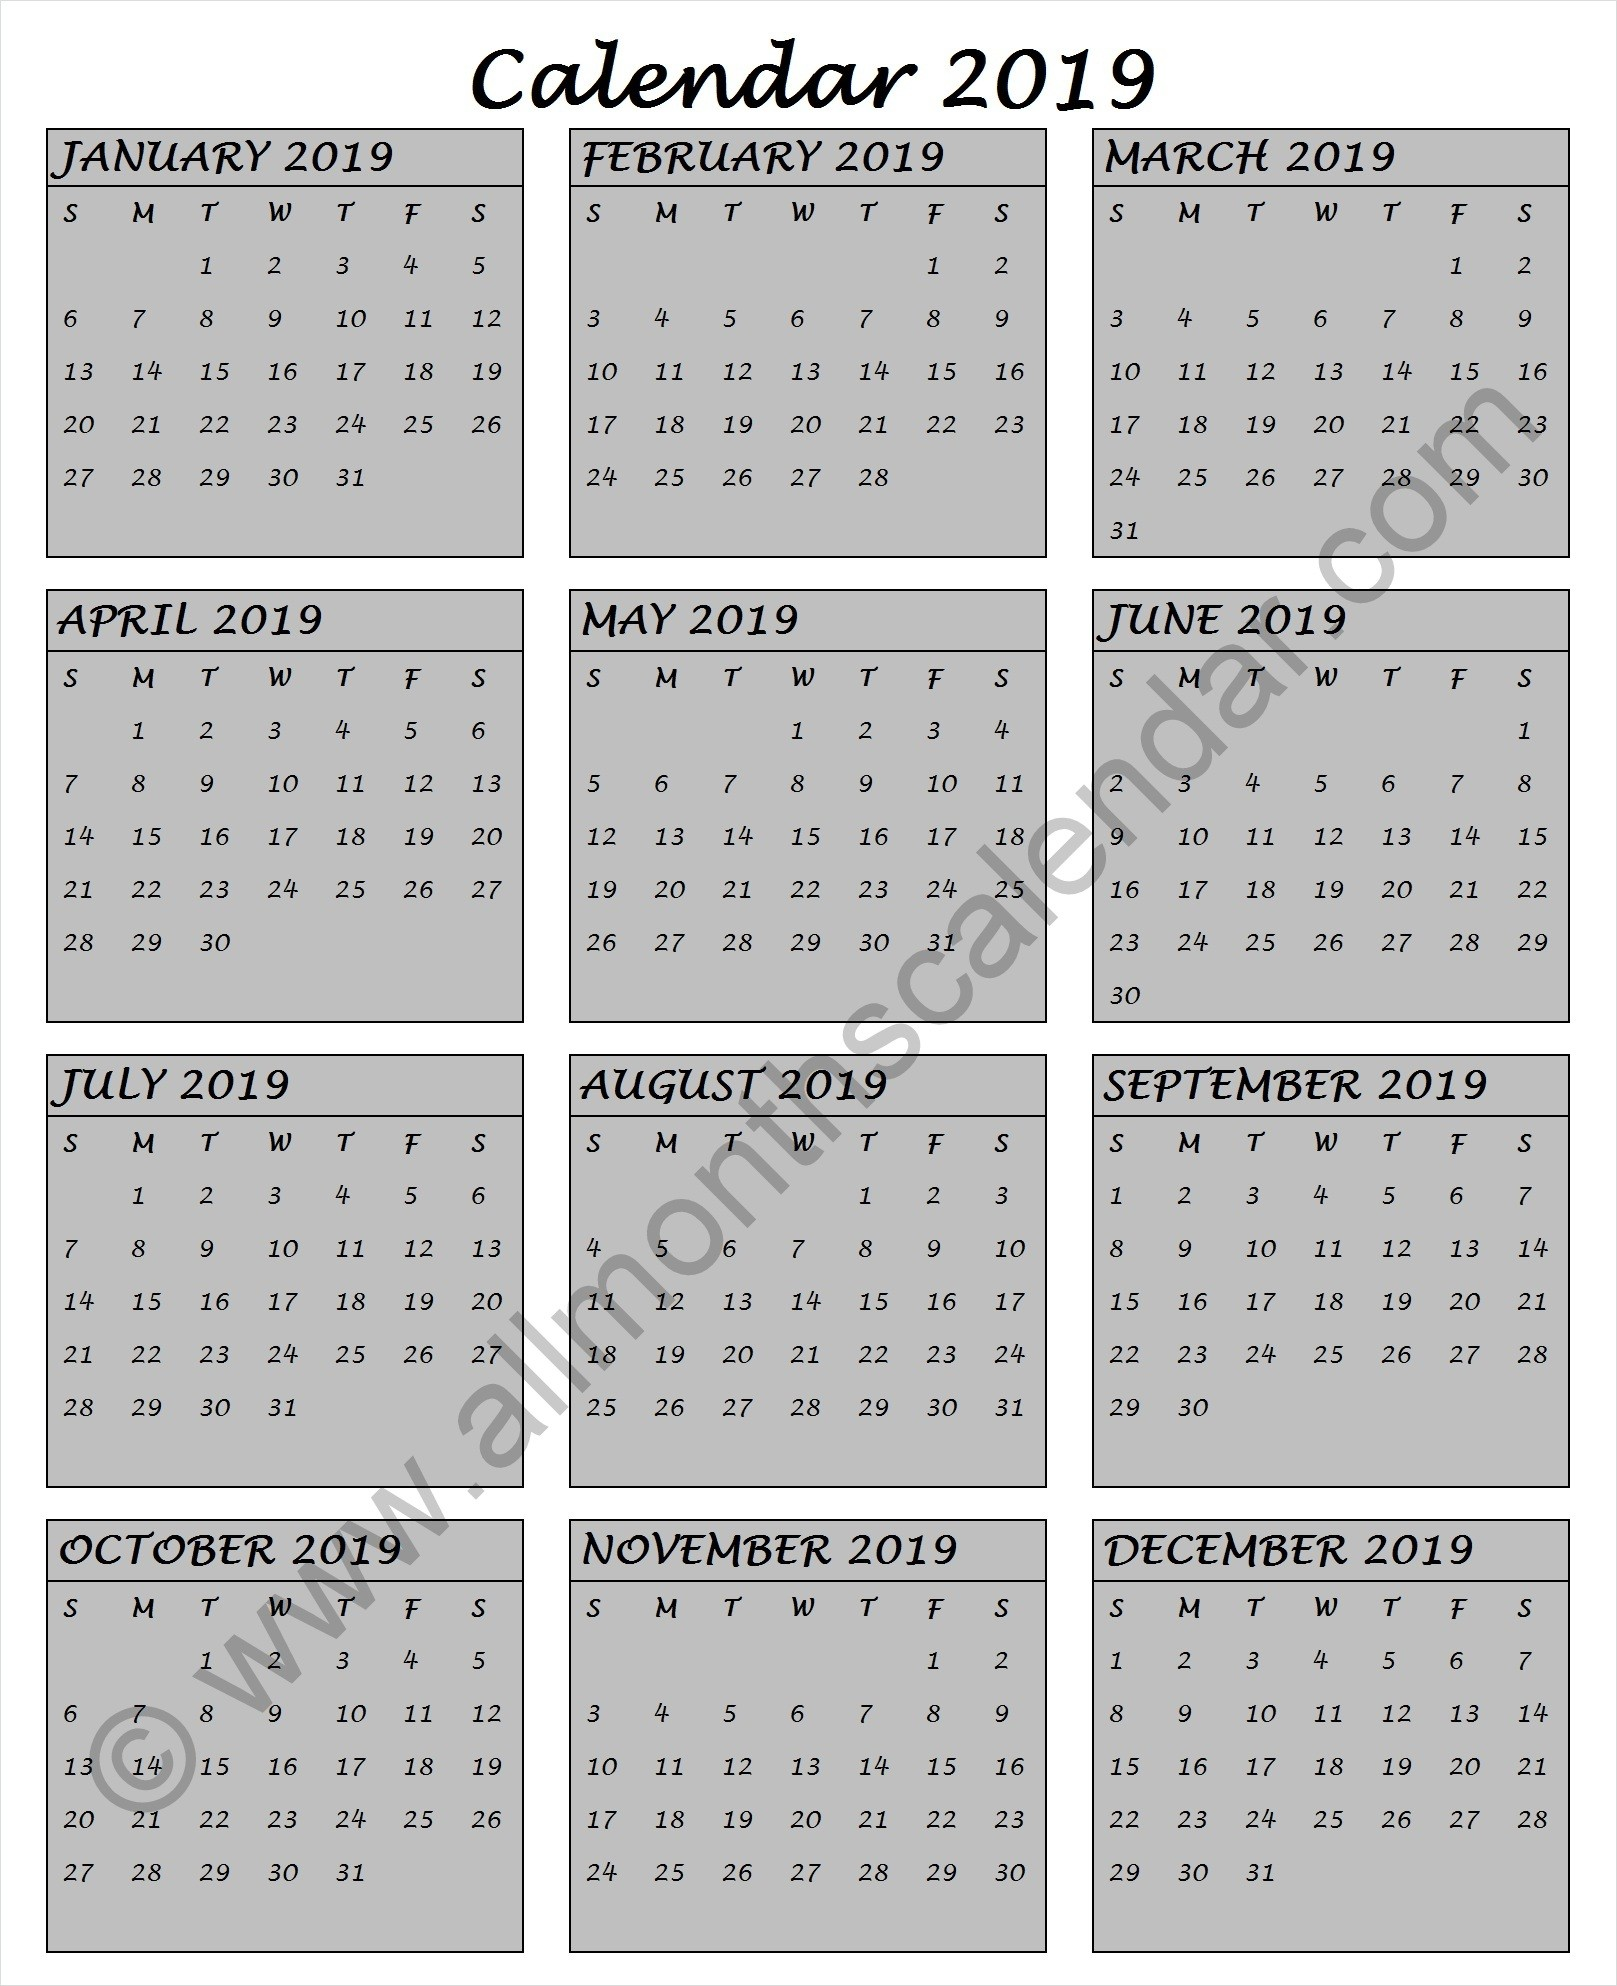 March 2019 Calendar Uk Printable Más Caliente August 2019 Calendar Excel Of March 2019 Calendar Uk Printable Más Actual Sat Test Dates Your Best Test Date 2017 2018 2019 2020